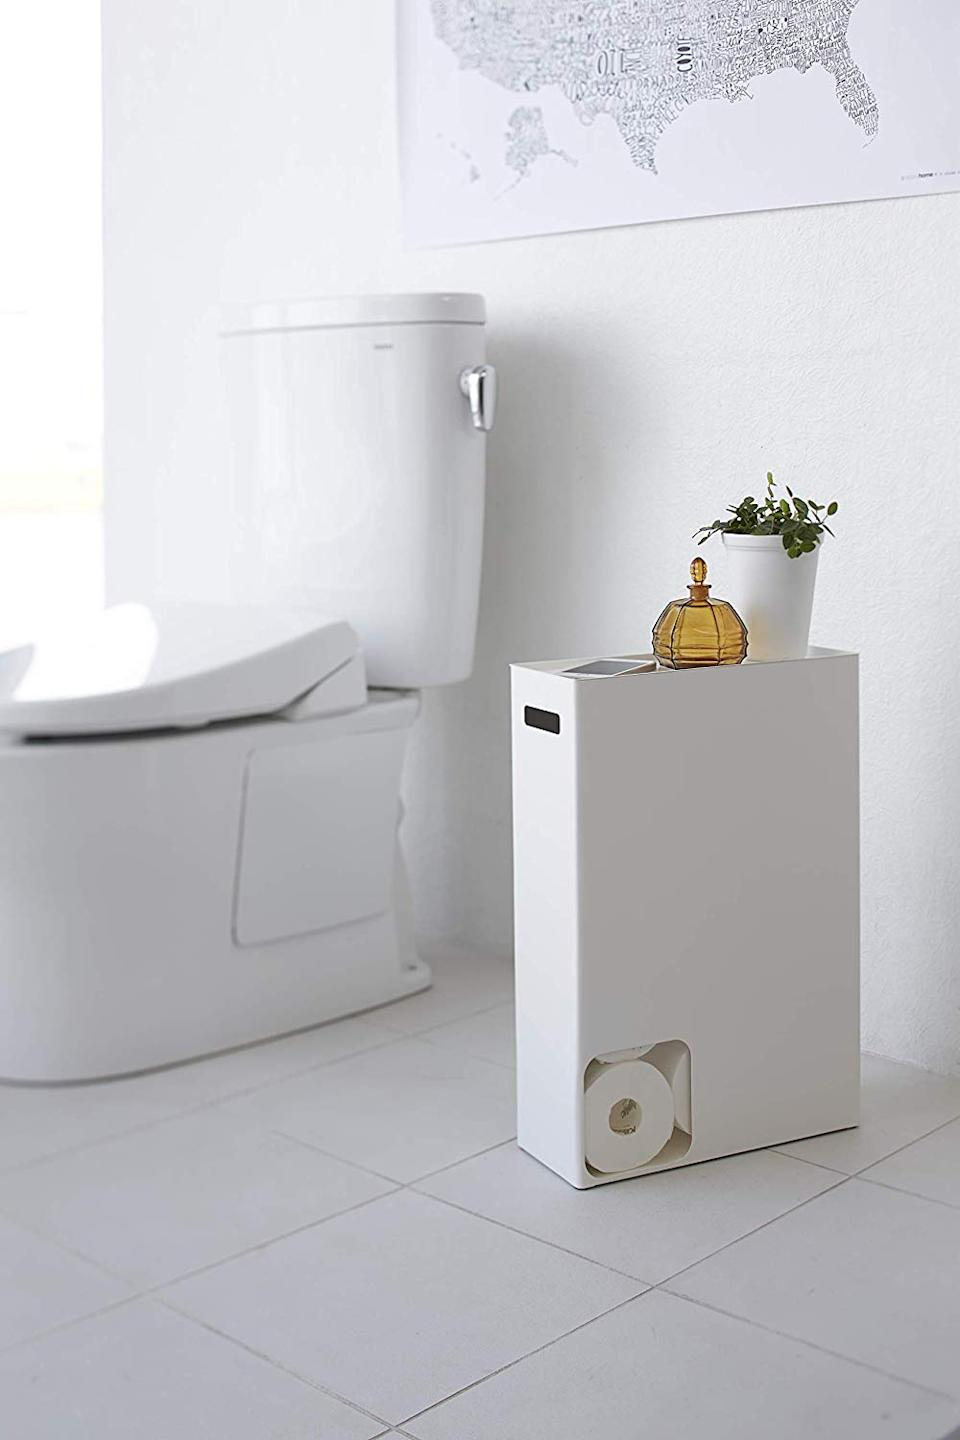 """<h3><a href=""""https://www.amazon.com/YAMAZAKI-home-Plate-Toilet-Stocker/dp/B00N1G23MS"""" rel=""""nofollow noopener"""" target=""""_blank"""" data-ylk=""""slk:Yamazaki Toilet Paper Stocker"""" class=""""link rapid-noclick-resp"""">Yamazaki Toilet Paper Stocker</a></h3><br>Stock it with toilet paper, then top it off with decorative items like a plant or a candle. It's the perfect small-space storage solution for tiny bathrooms. <br><br><strong>Yamazaki</strong> Toilet Paper Stocker, $, available at <a href=""""https://www.amazon.com/YAMAZAKI-home-Plate-Toilet-Stocker/dp/B00N1G23MS"""" rel=""""nofollow noopener"""" target=""""_blank"""" data-ylk=""""slk:Amazon"""" class=""""link rapid-noclick-resp"""">Amazon</a>"""